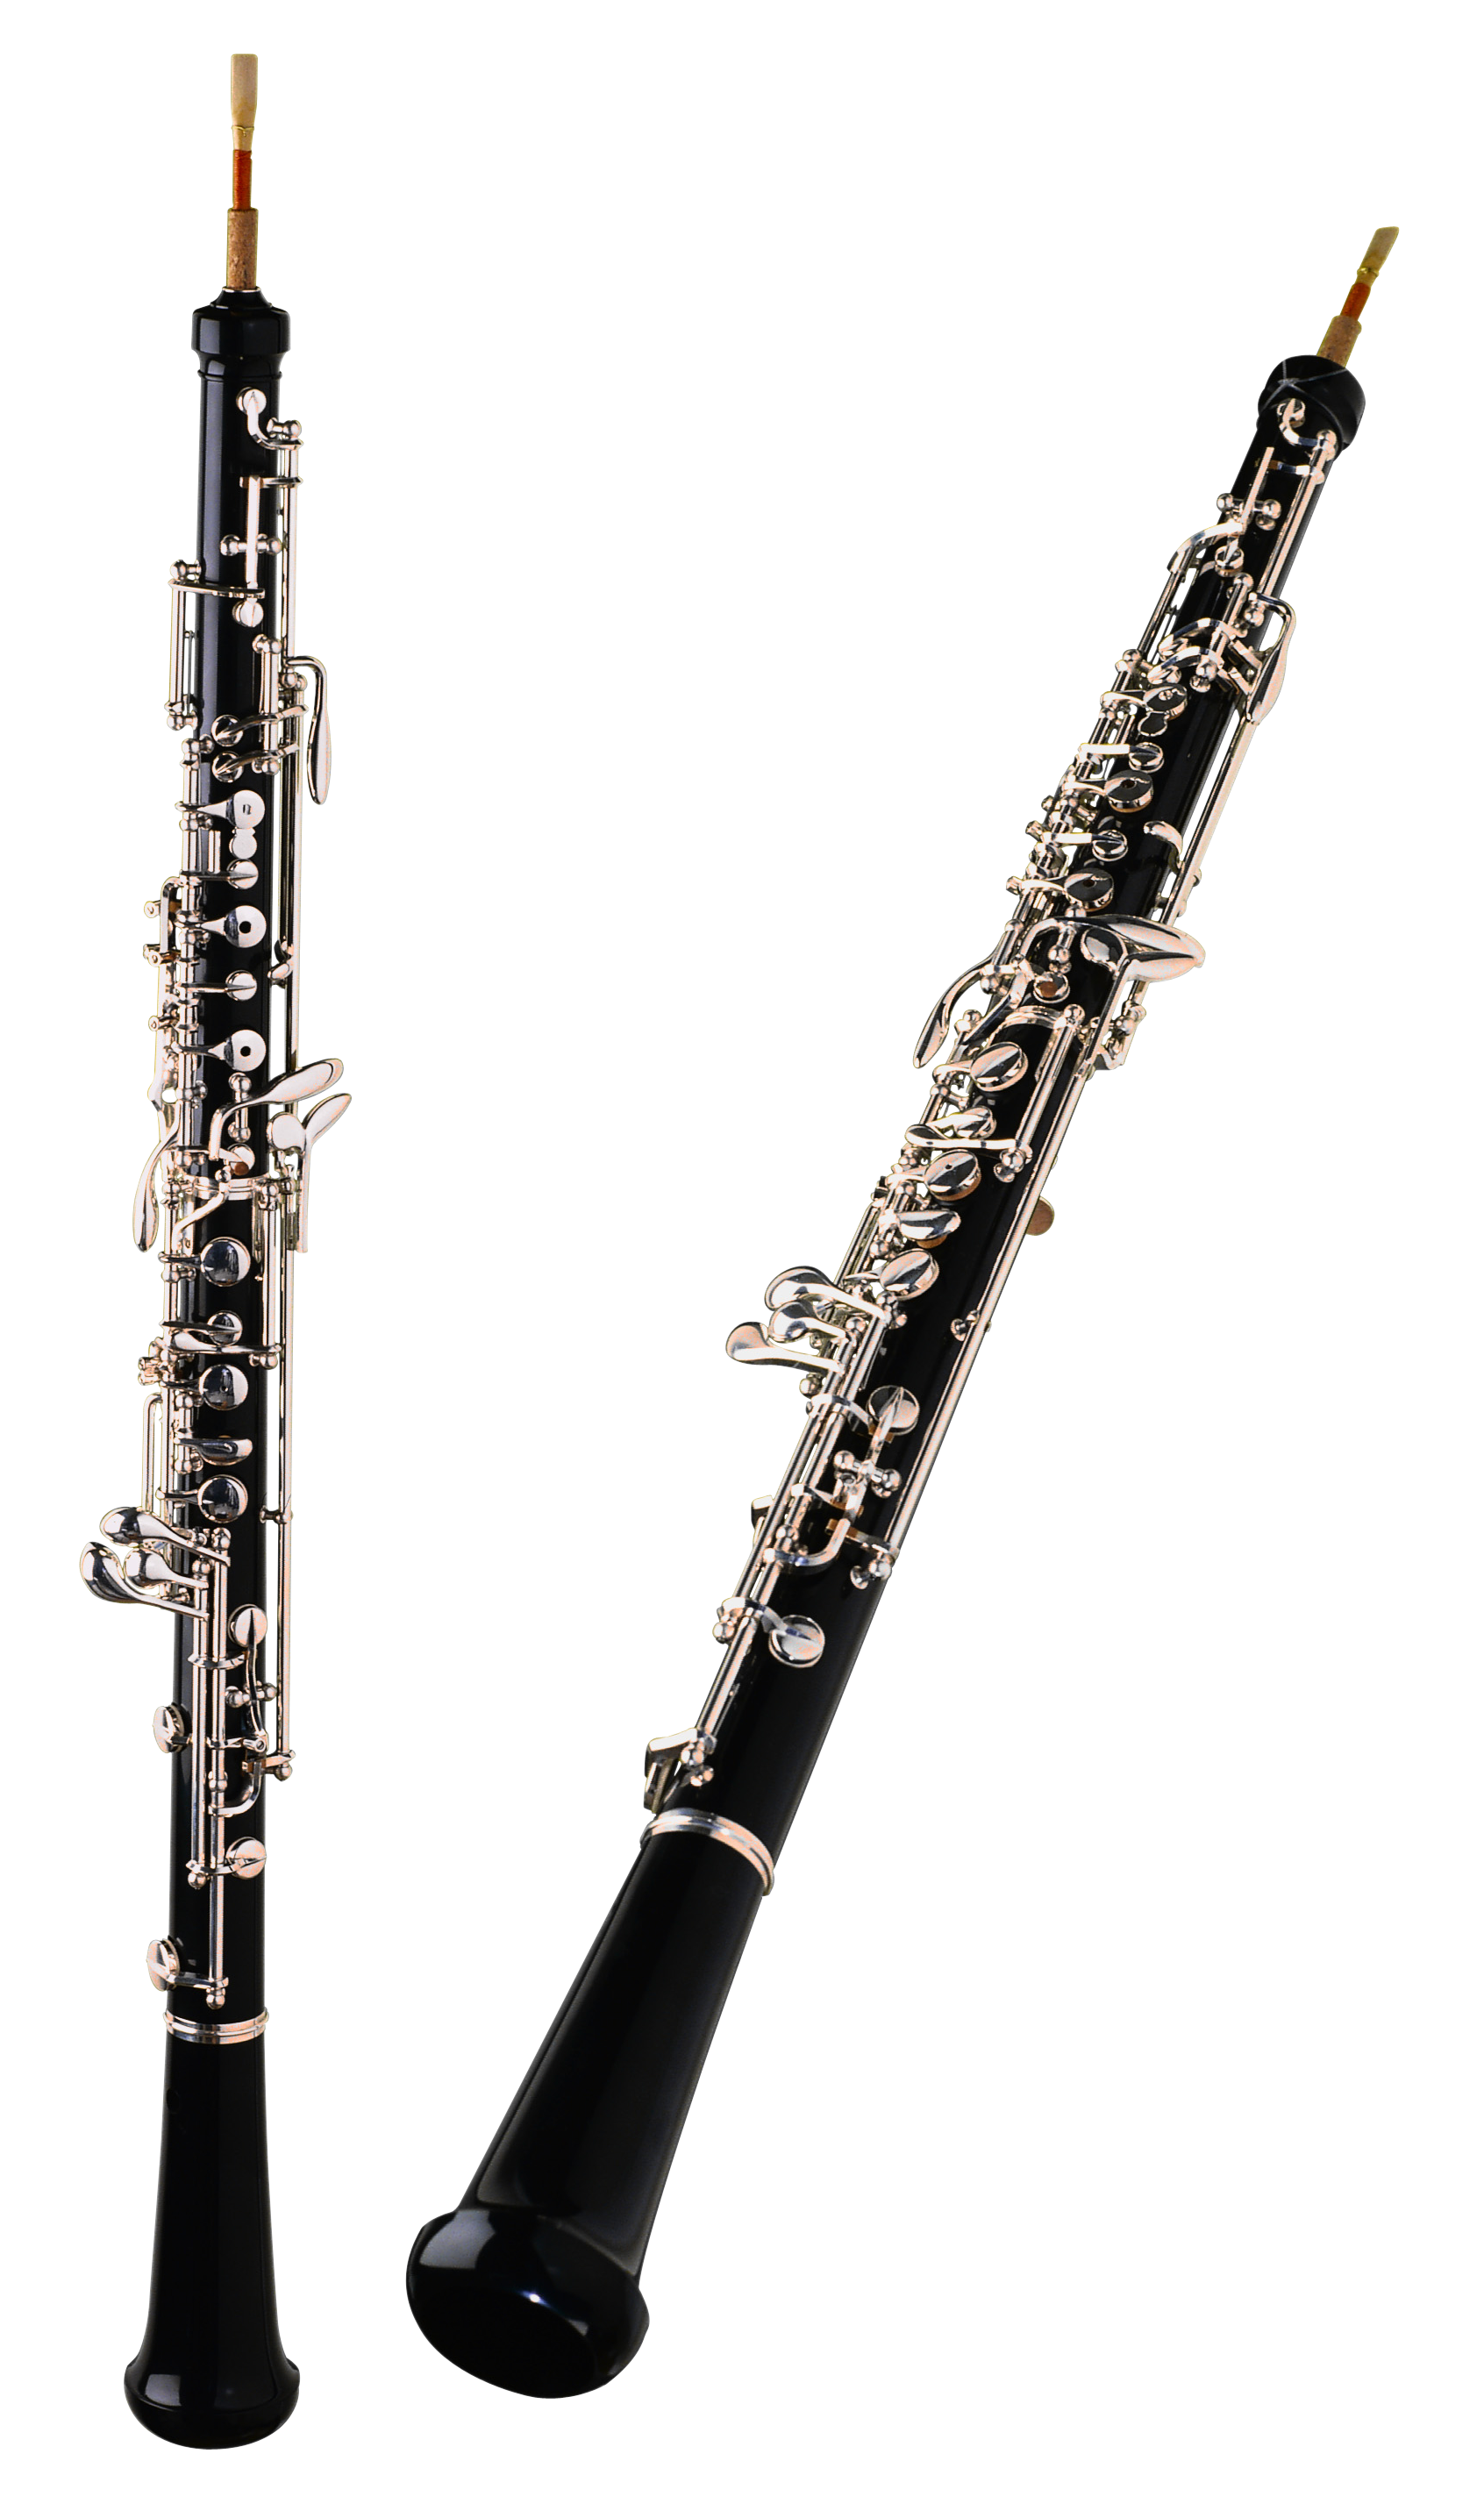 Png images free download. Flute clipart clarinet player